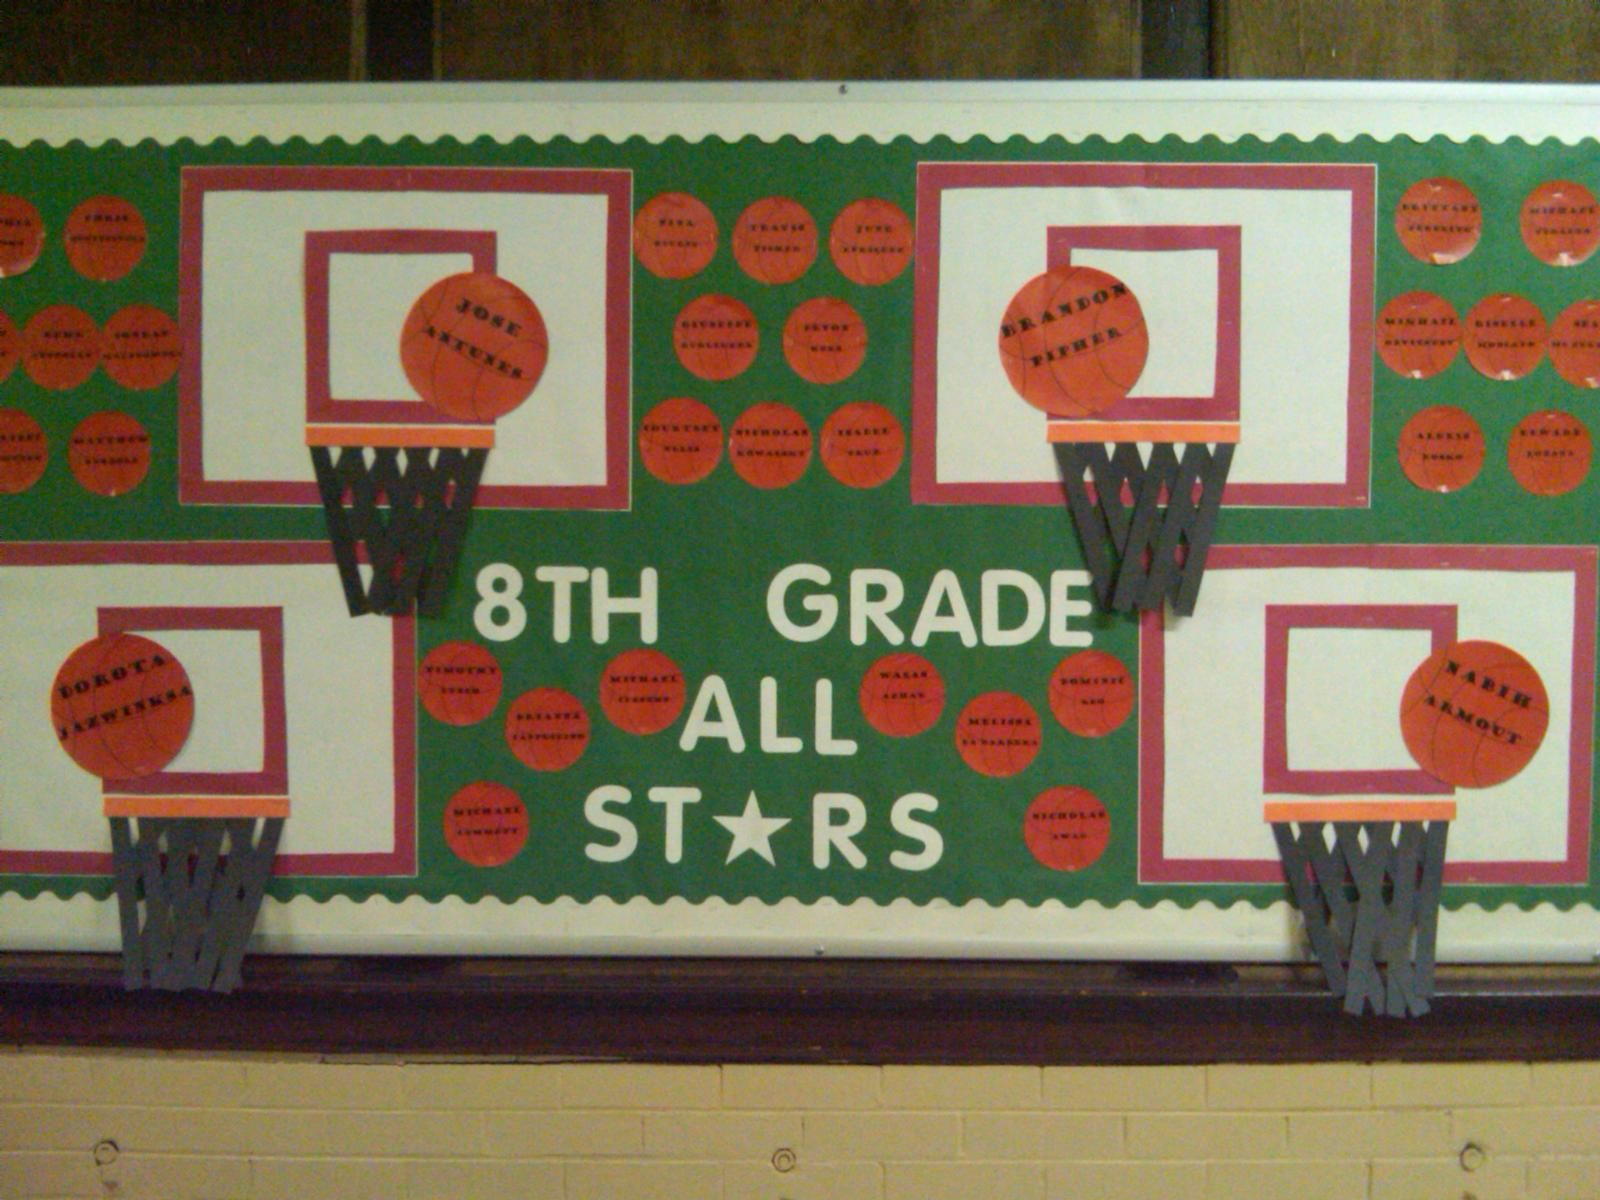 Back to school design background with primary subject matter school - Student Achievement Bulletin Boards Miss Keeler 8th Grade Language Arts North Arlington Middle School